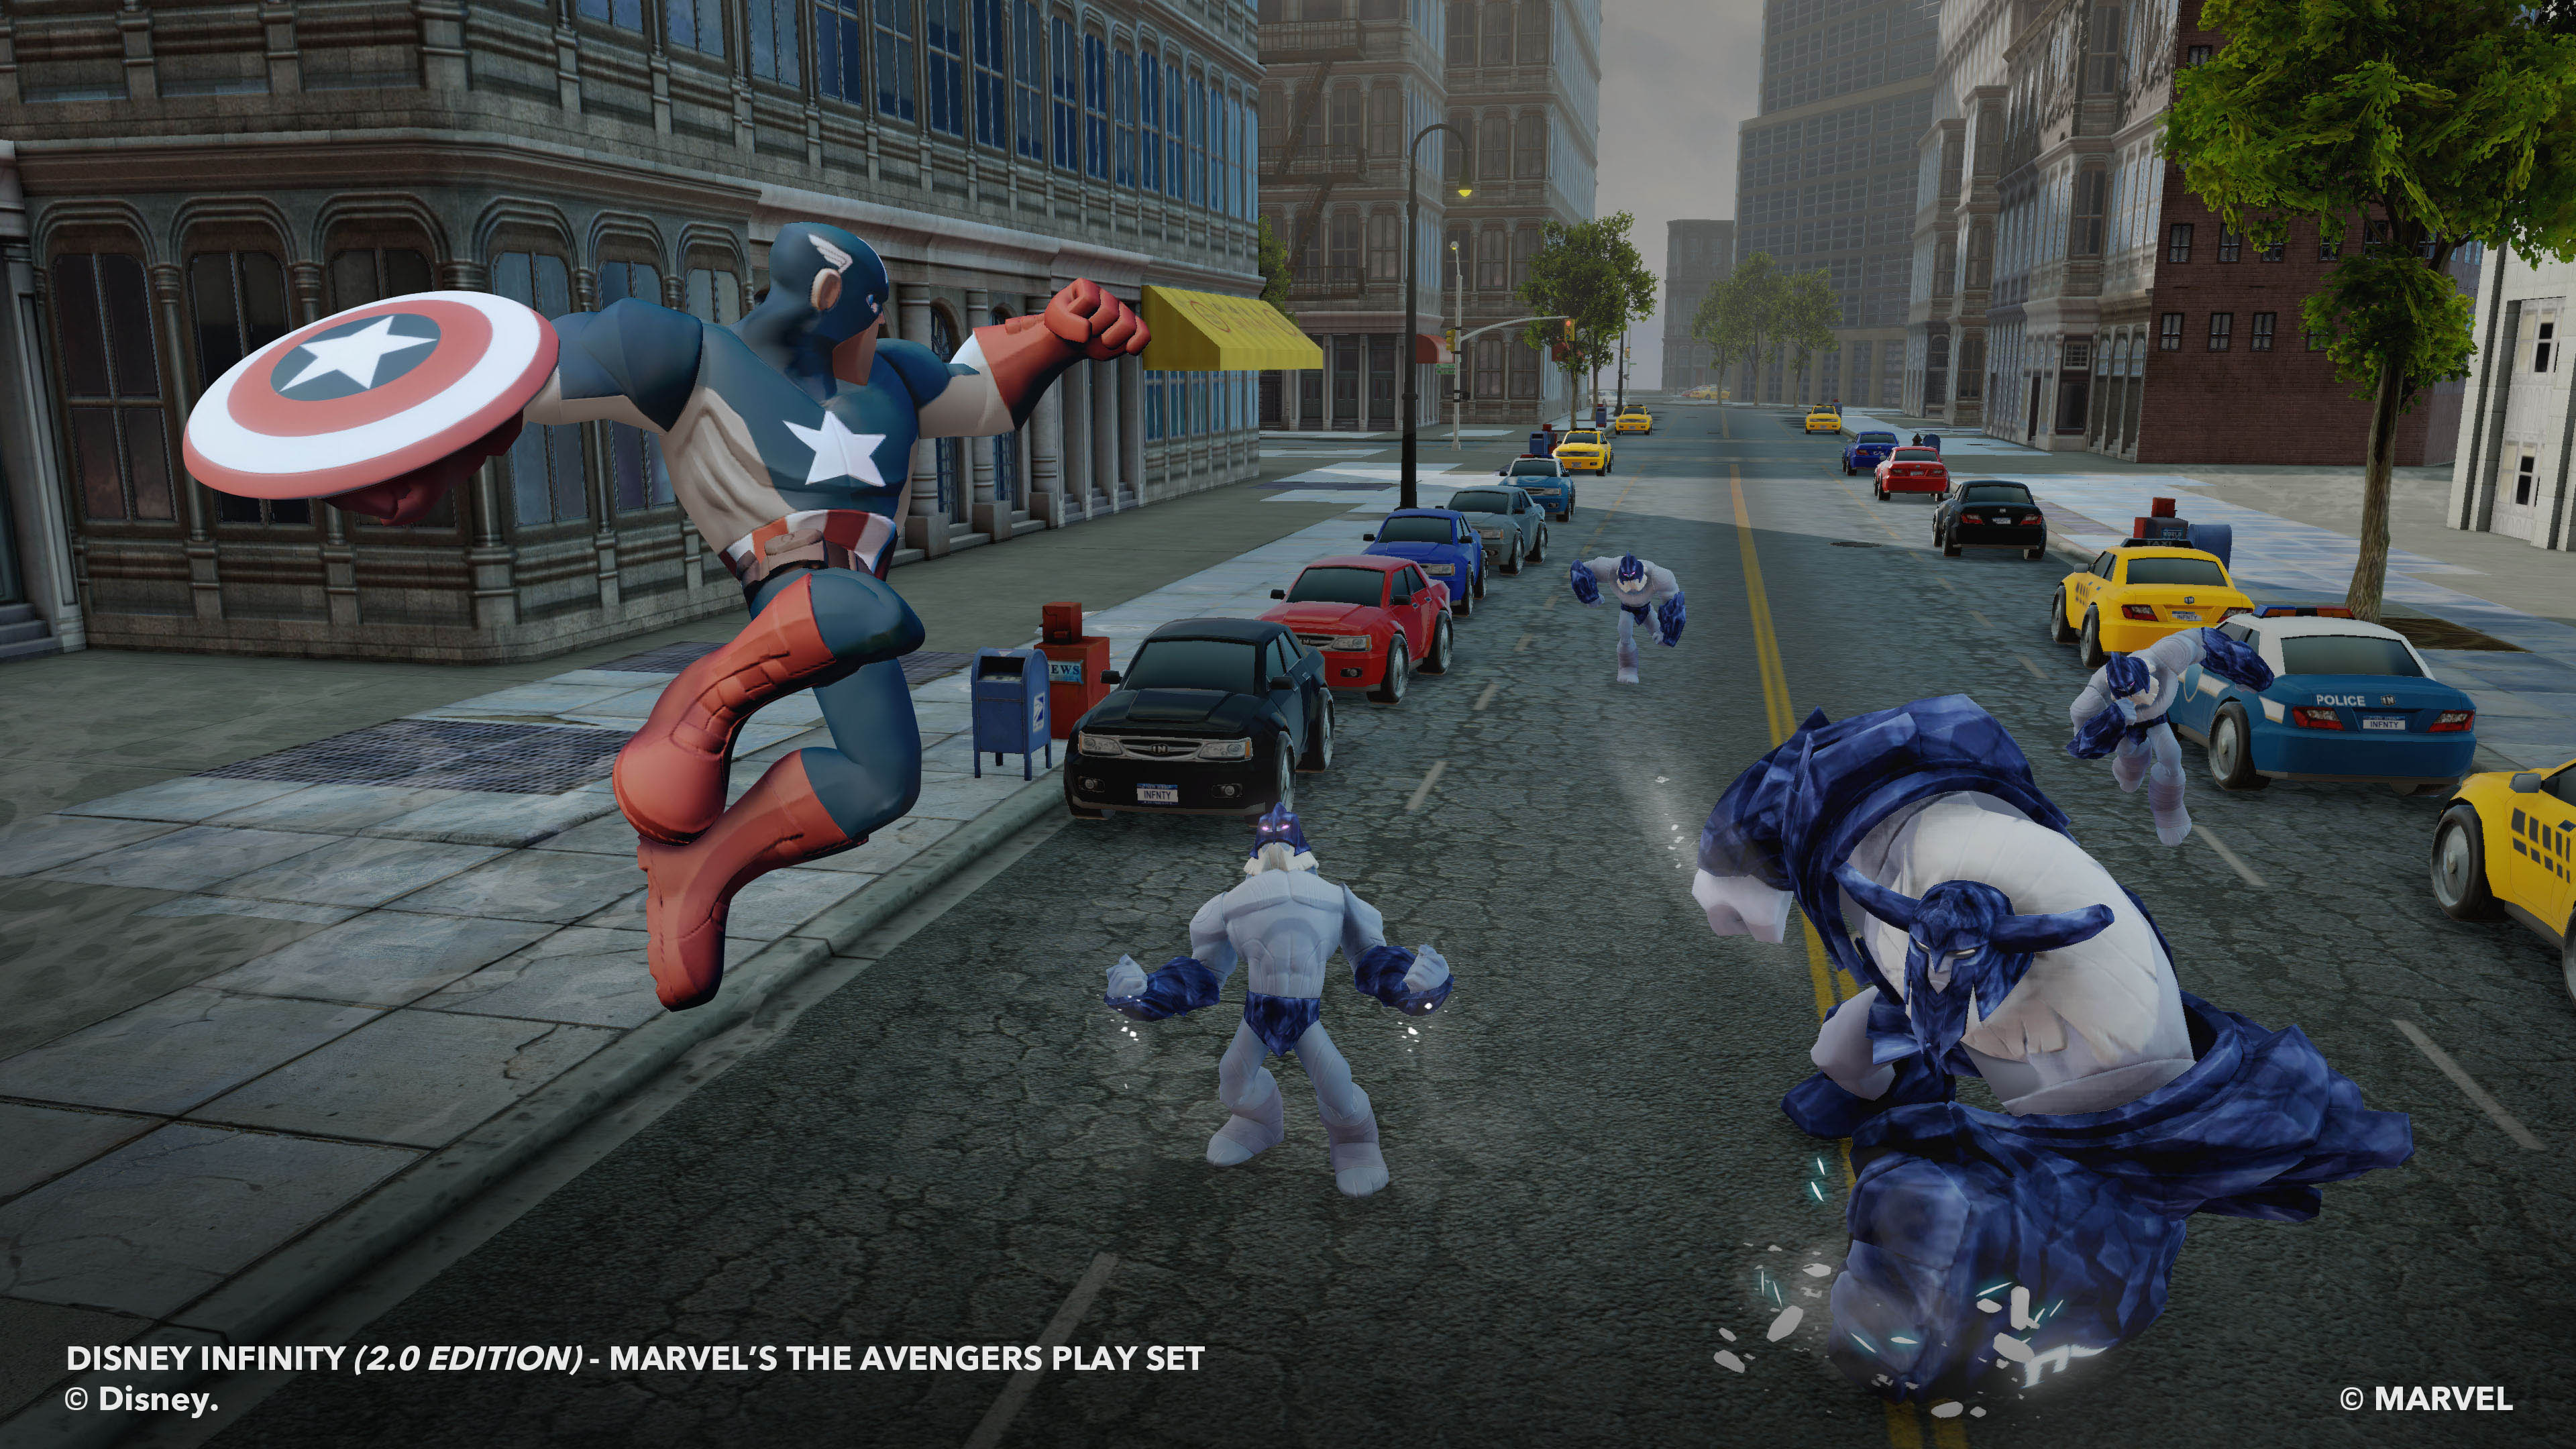 Marvel Joins the Disney Infinity Universe